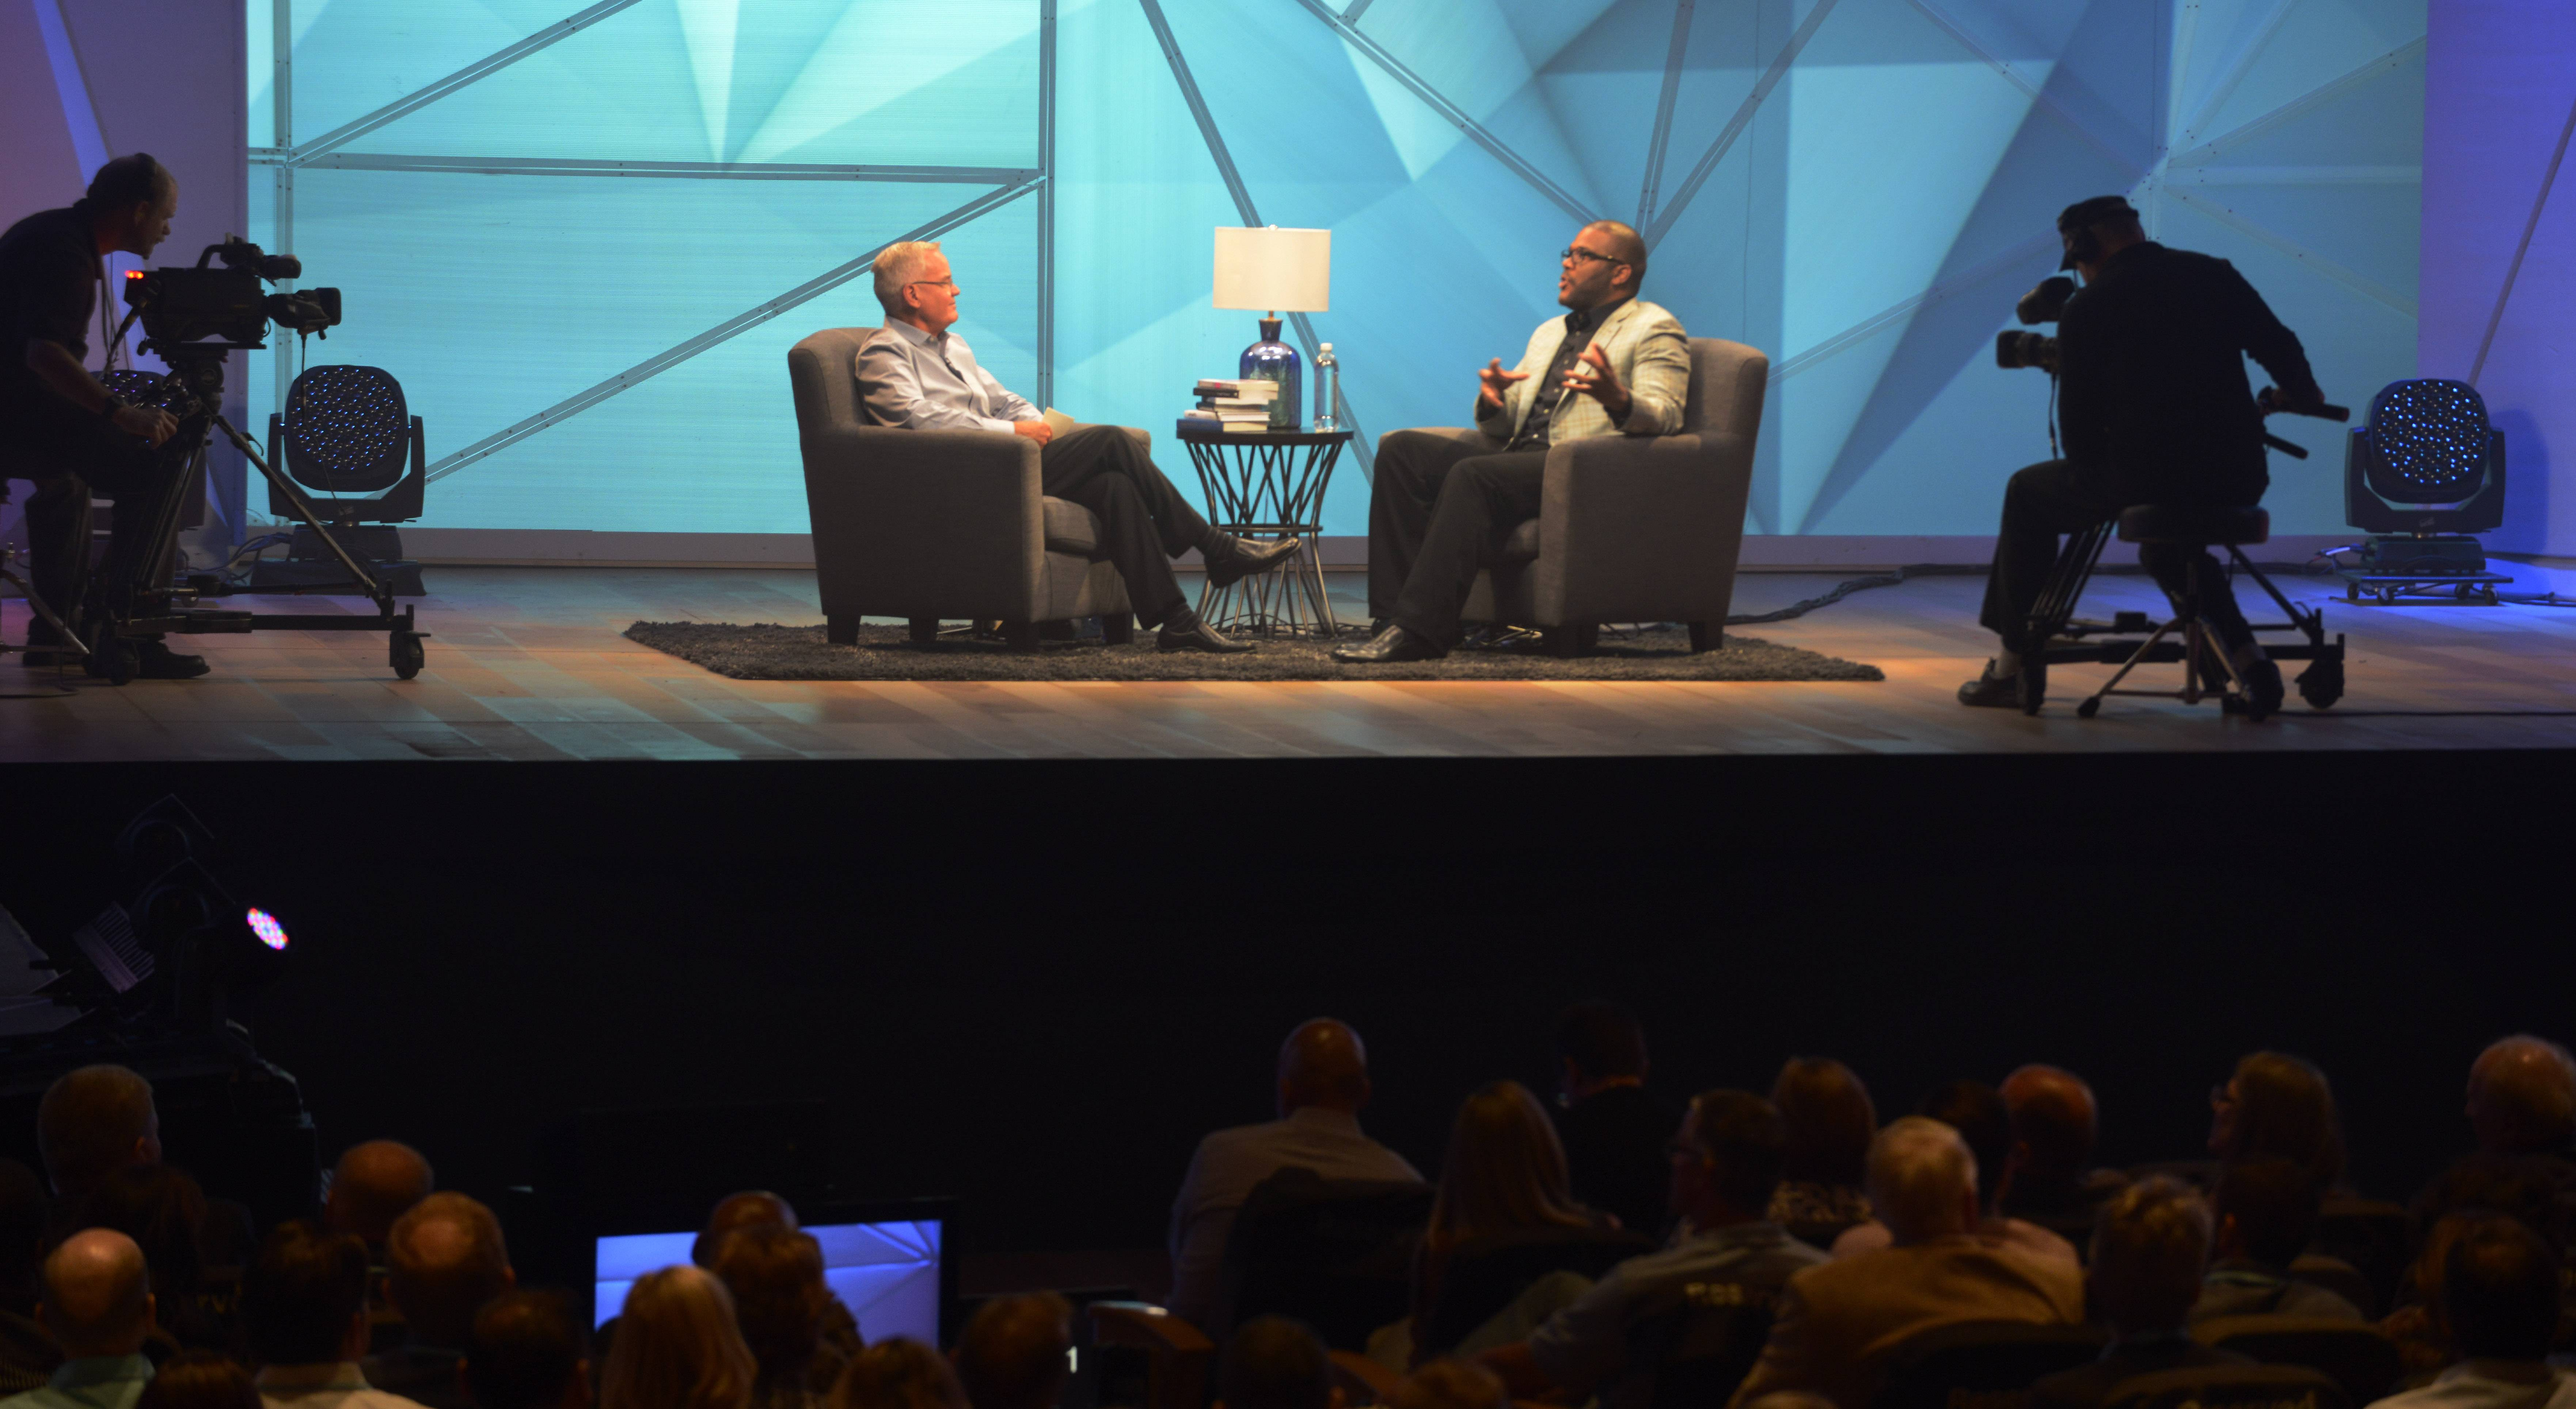 Tyler Perry tells Willow Creek Community Church Senior Pastor Bill Hybels how a difficult, yet inspiring childhood informs his work today.